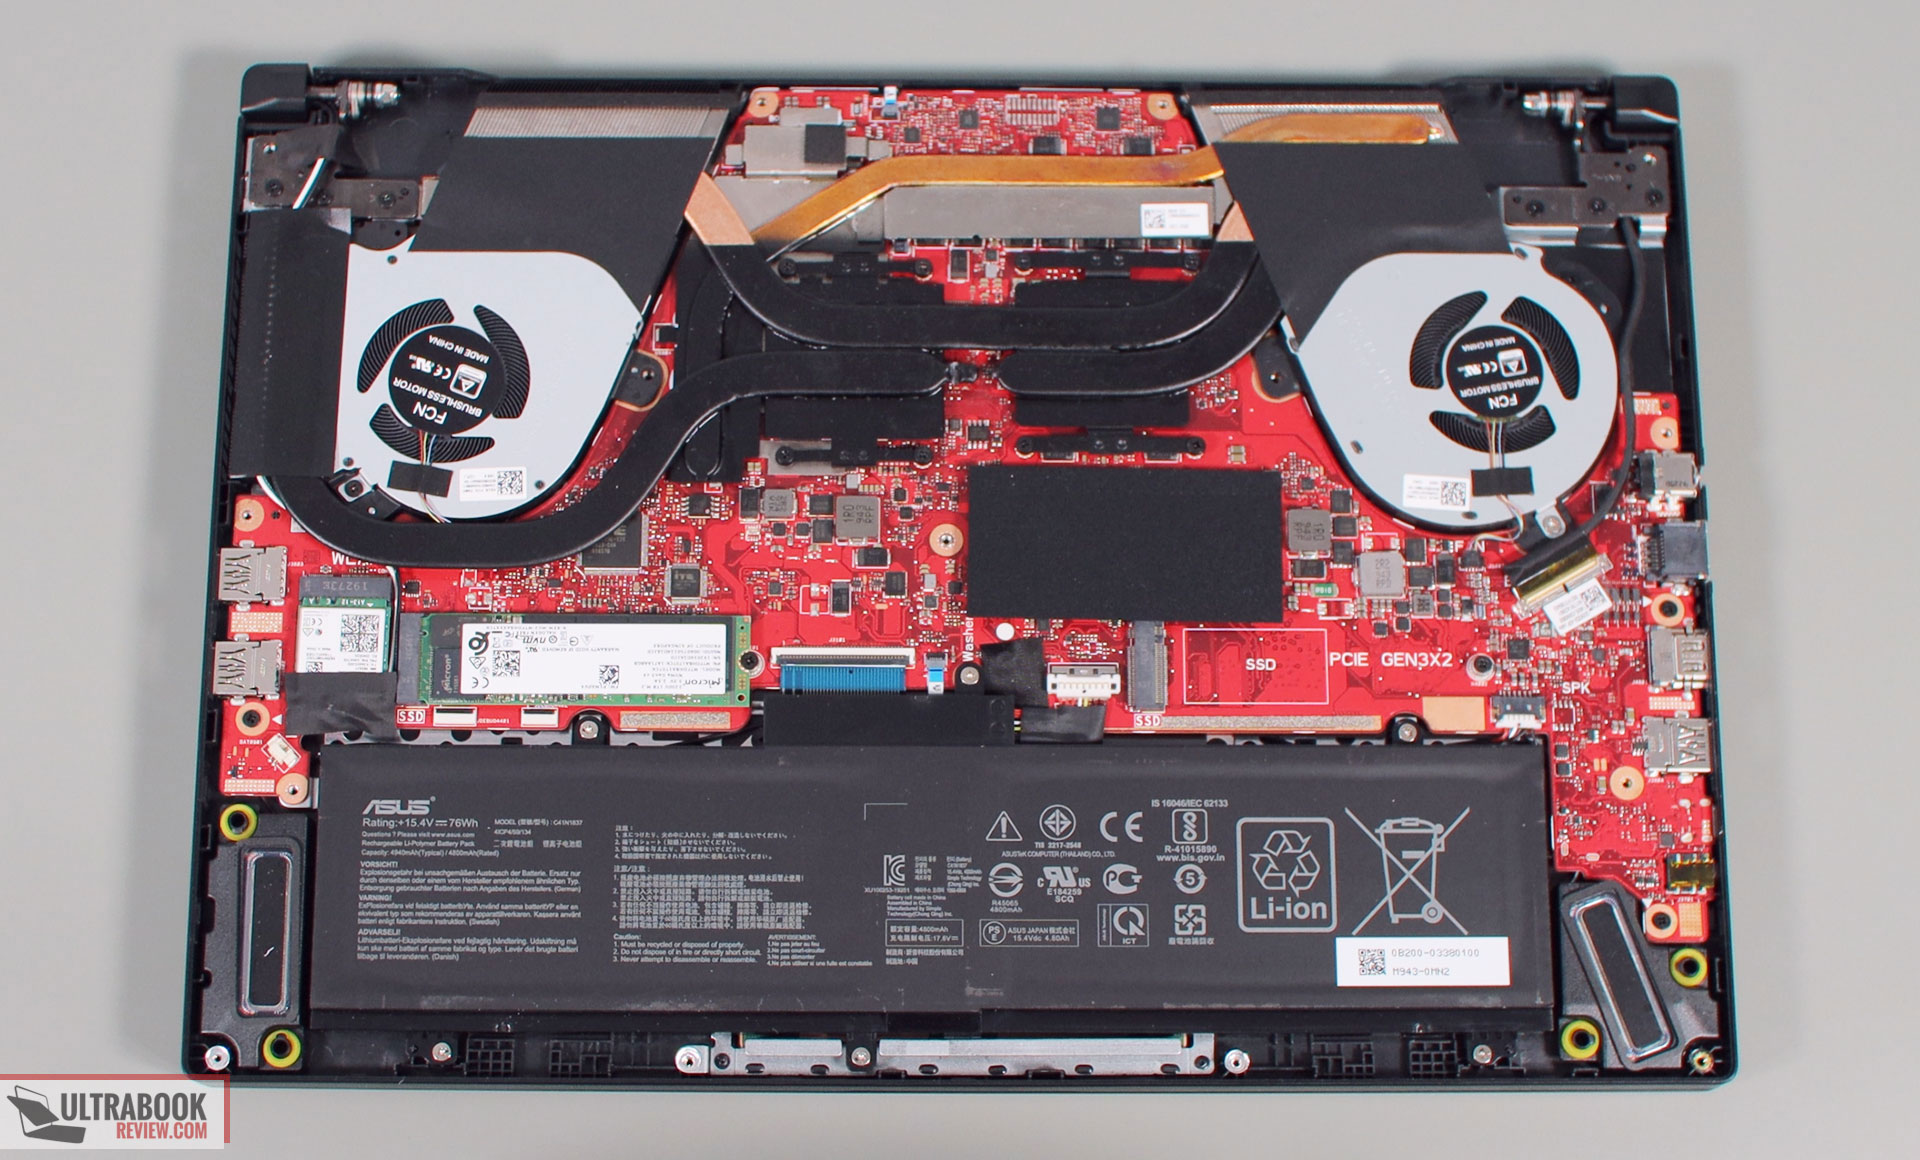 Asus Zephyrus G15 GA502 thermal design and disassembly